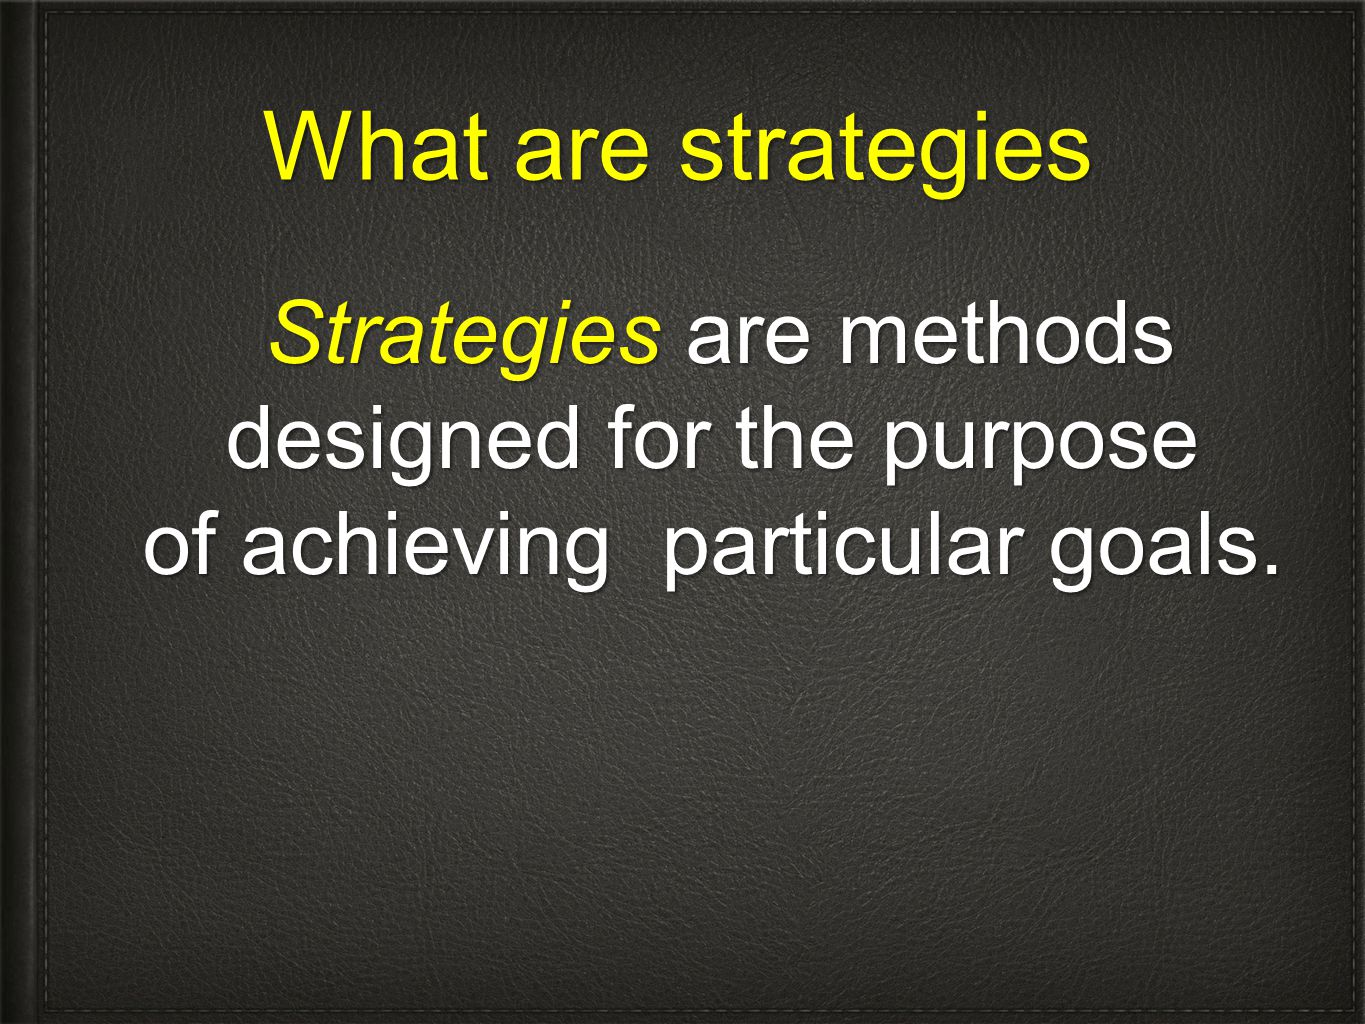 What are strategies of achieving particular goals.